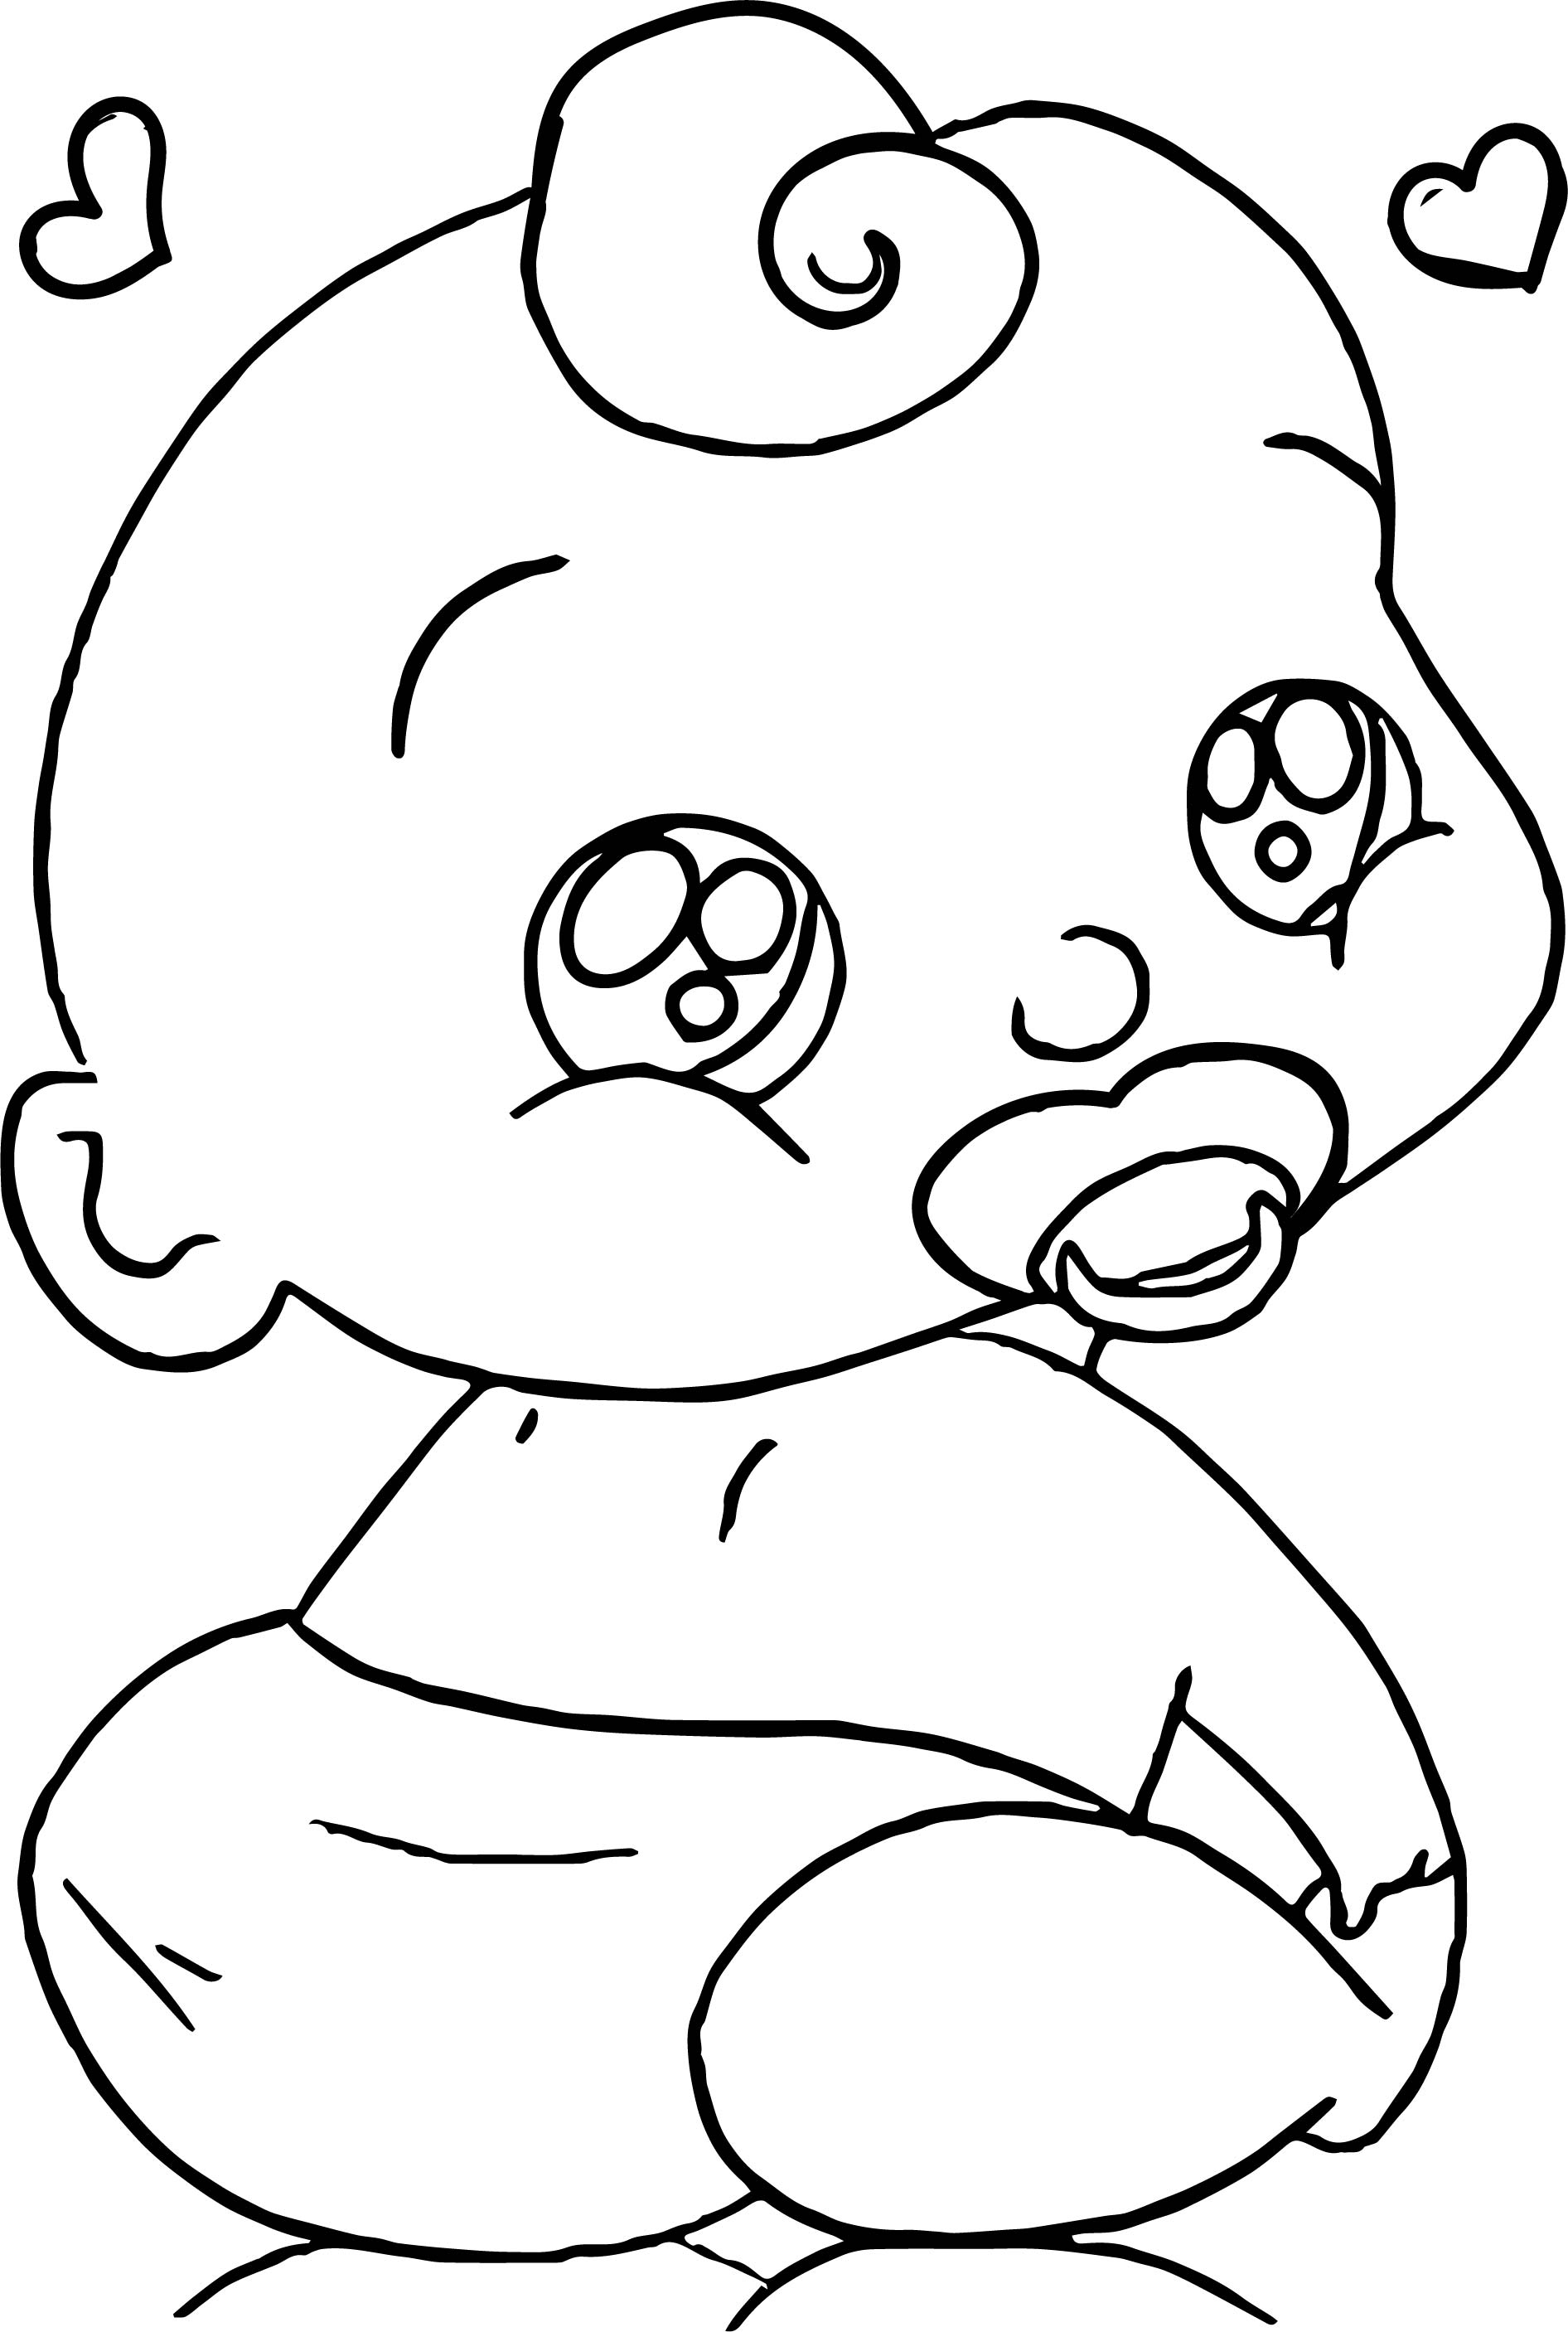 Baby Boy Cartoon Faces Coloring Page